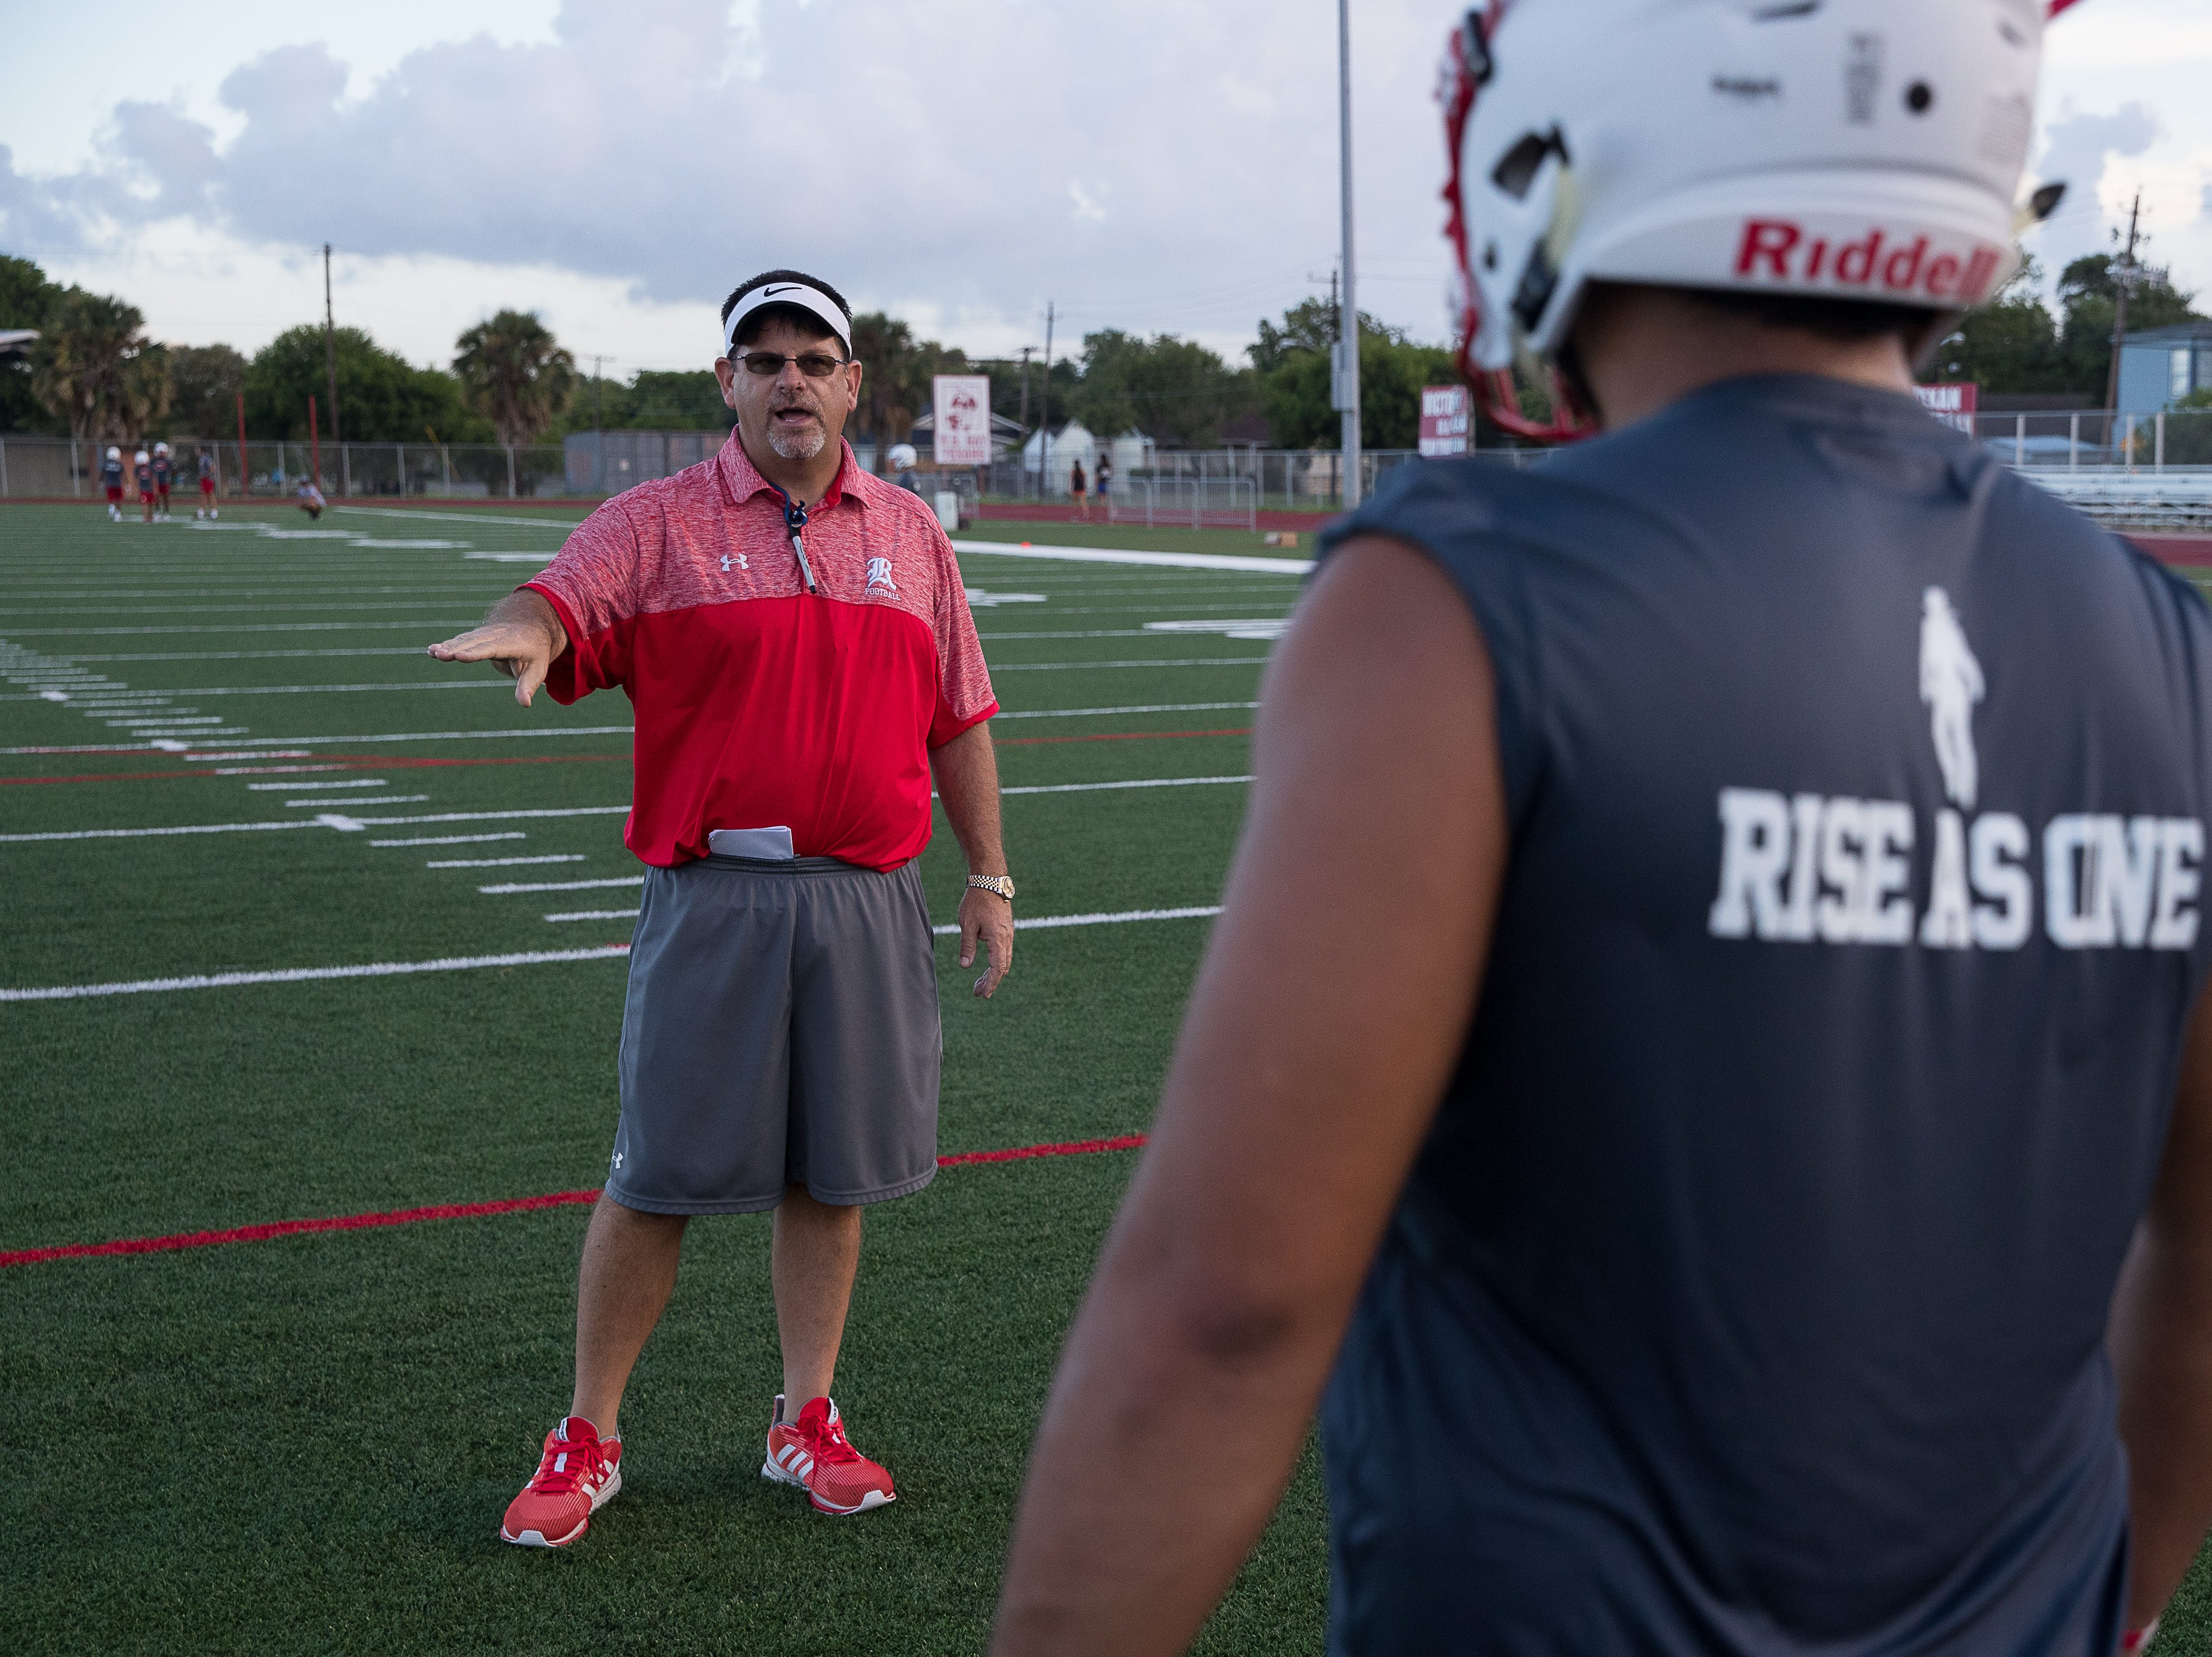 Ray head coach Craig Charlton talks to his players on the first day of practice for the 2018 season at Ray High School on Monday, Aug. 6, 2018.